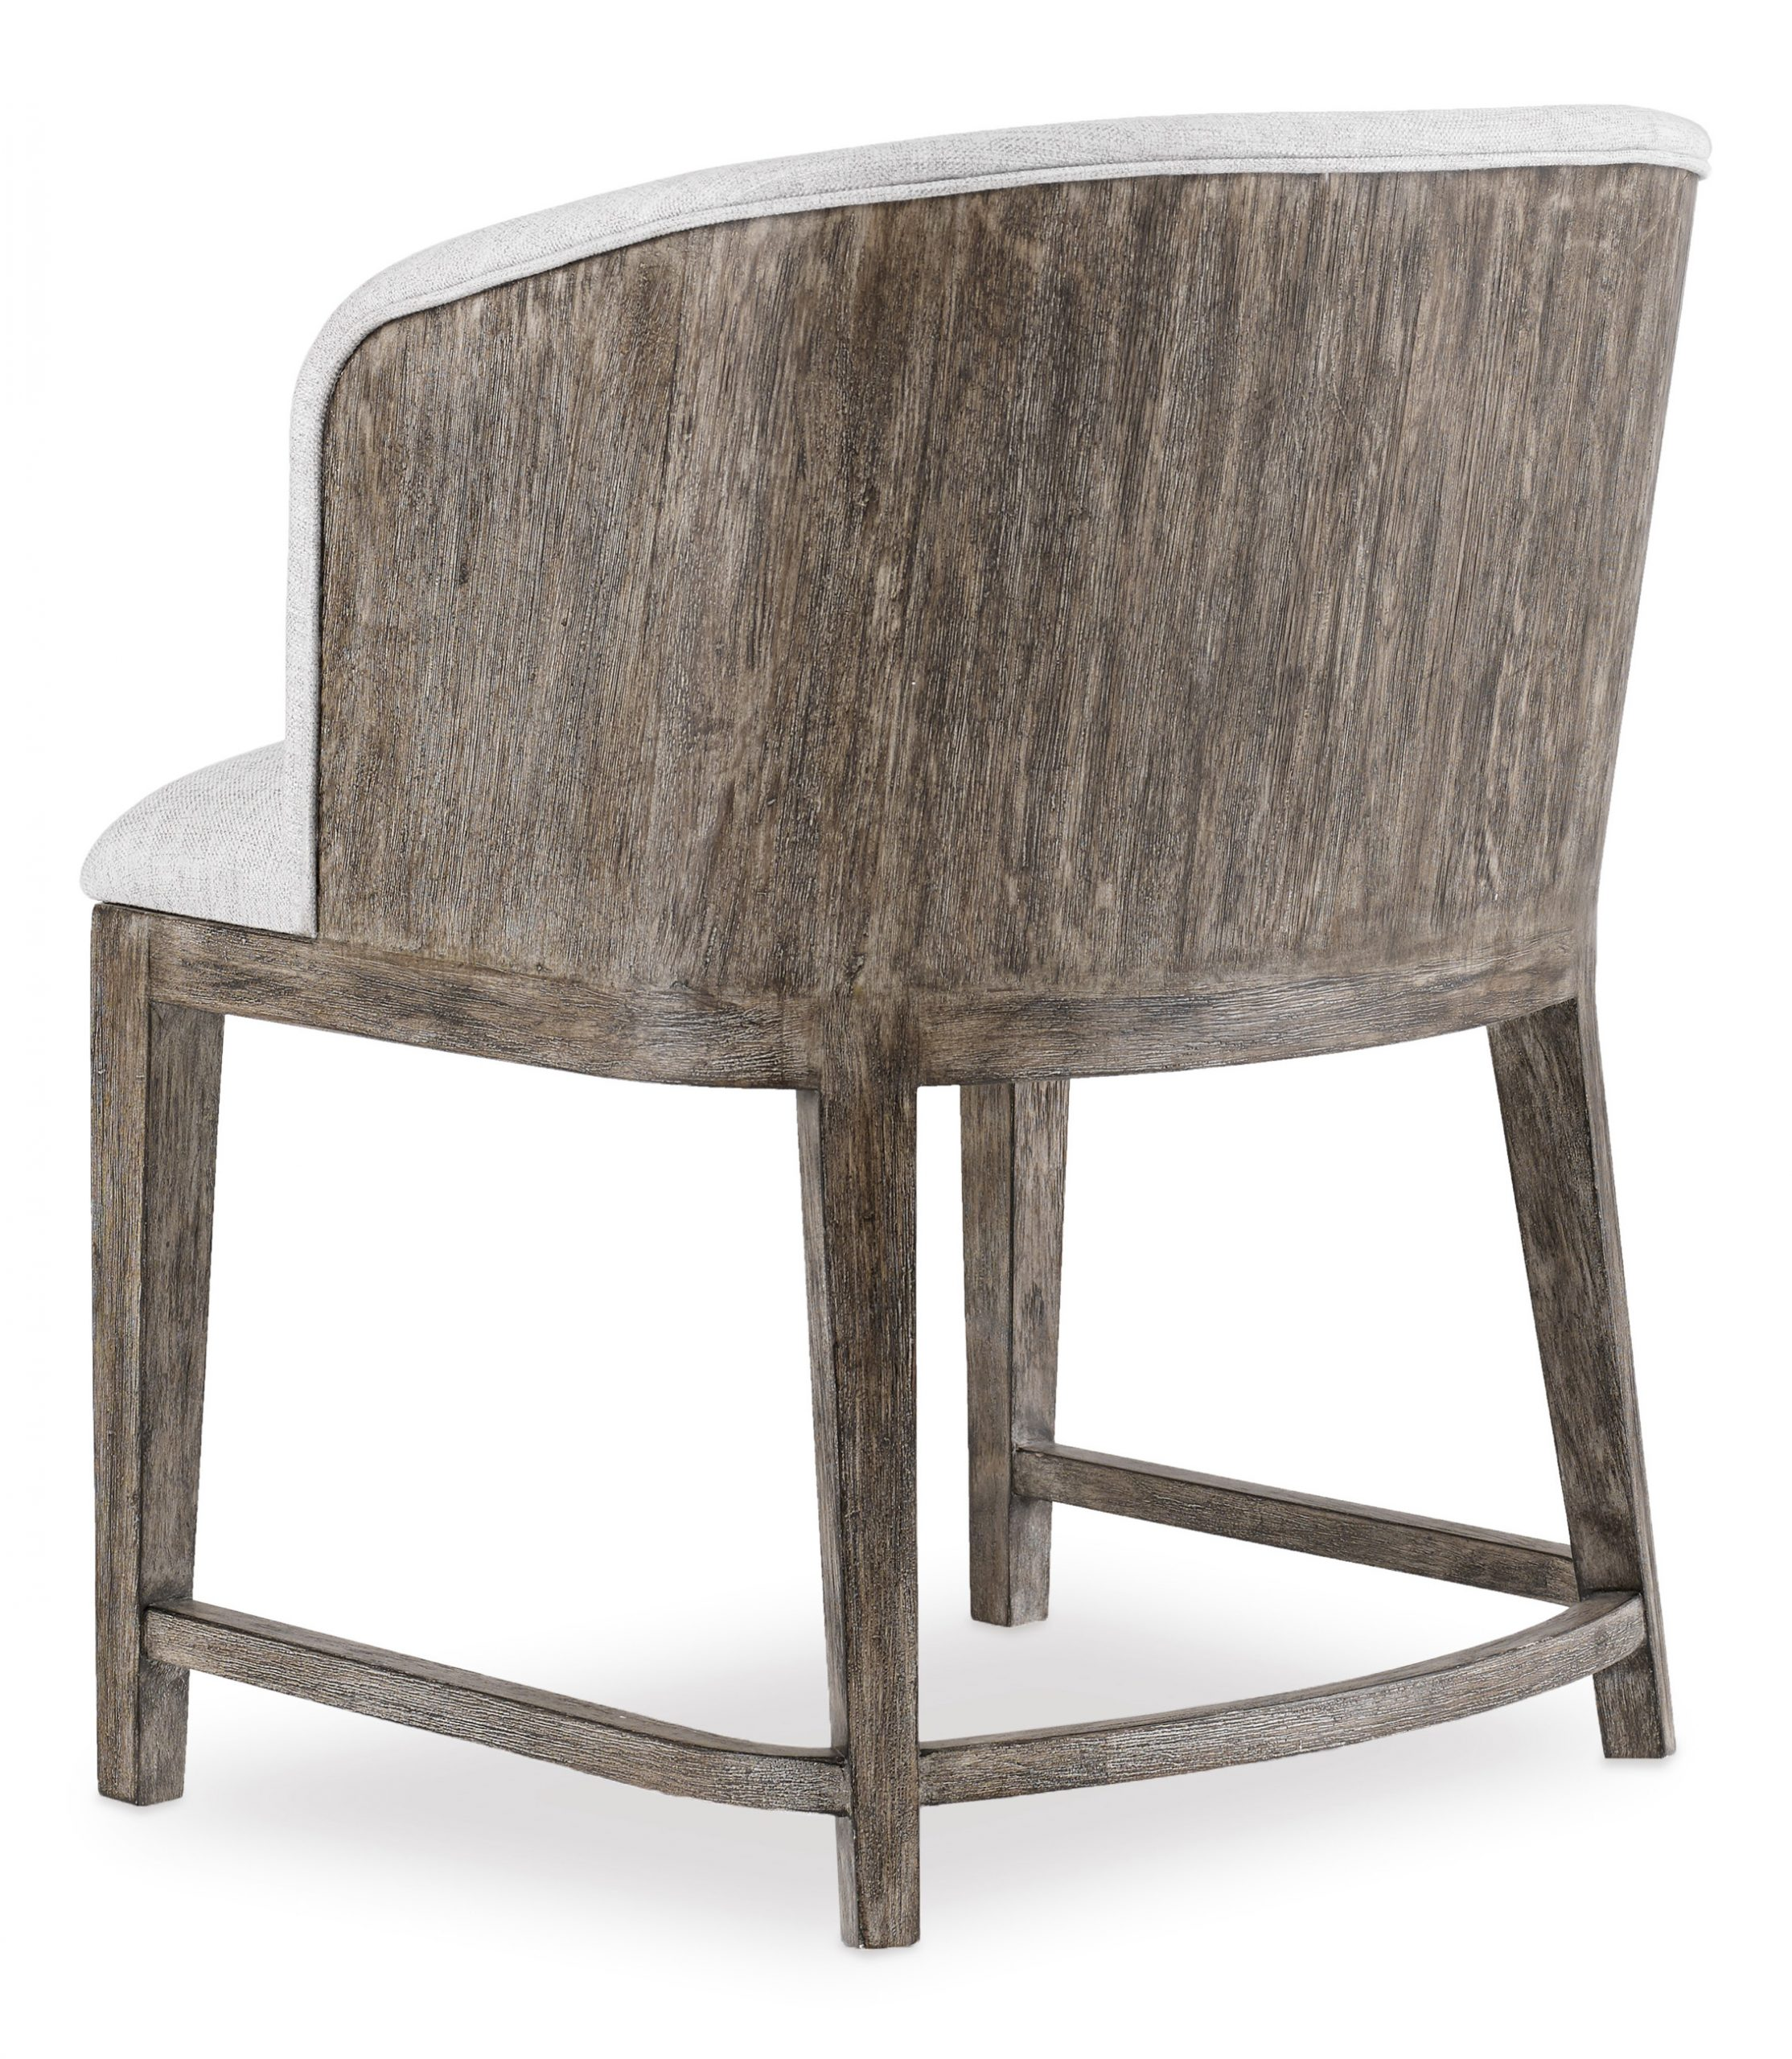 Curata Upholstered Chair w/wood back